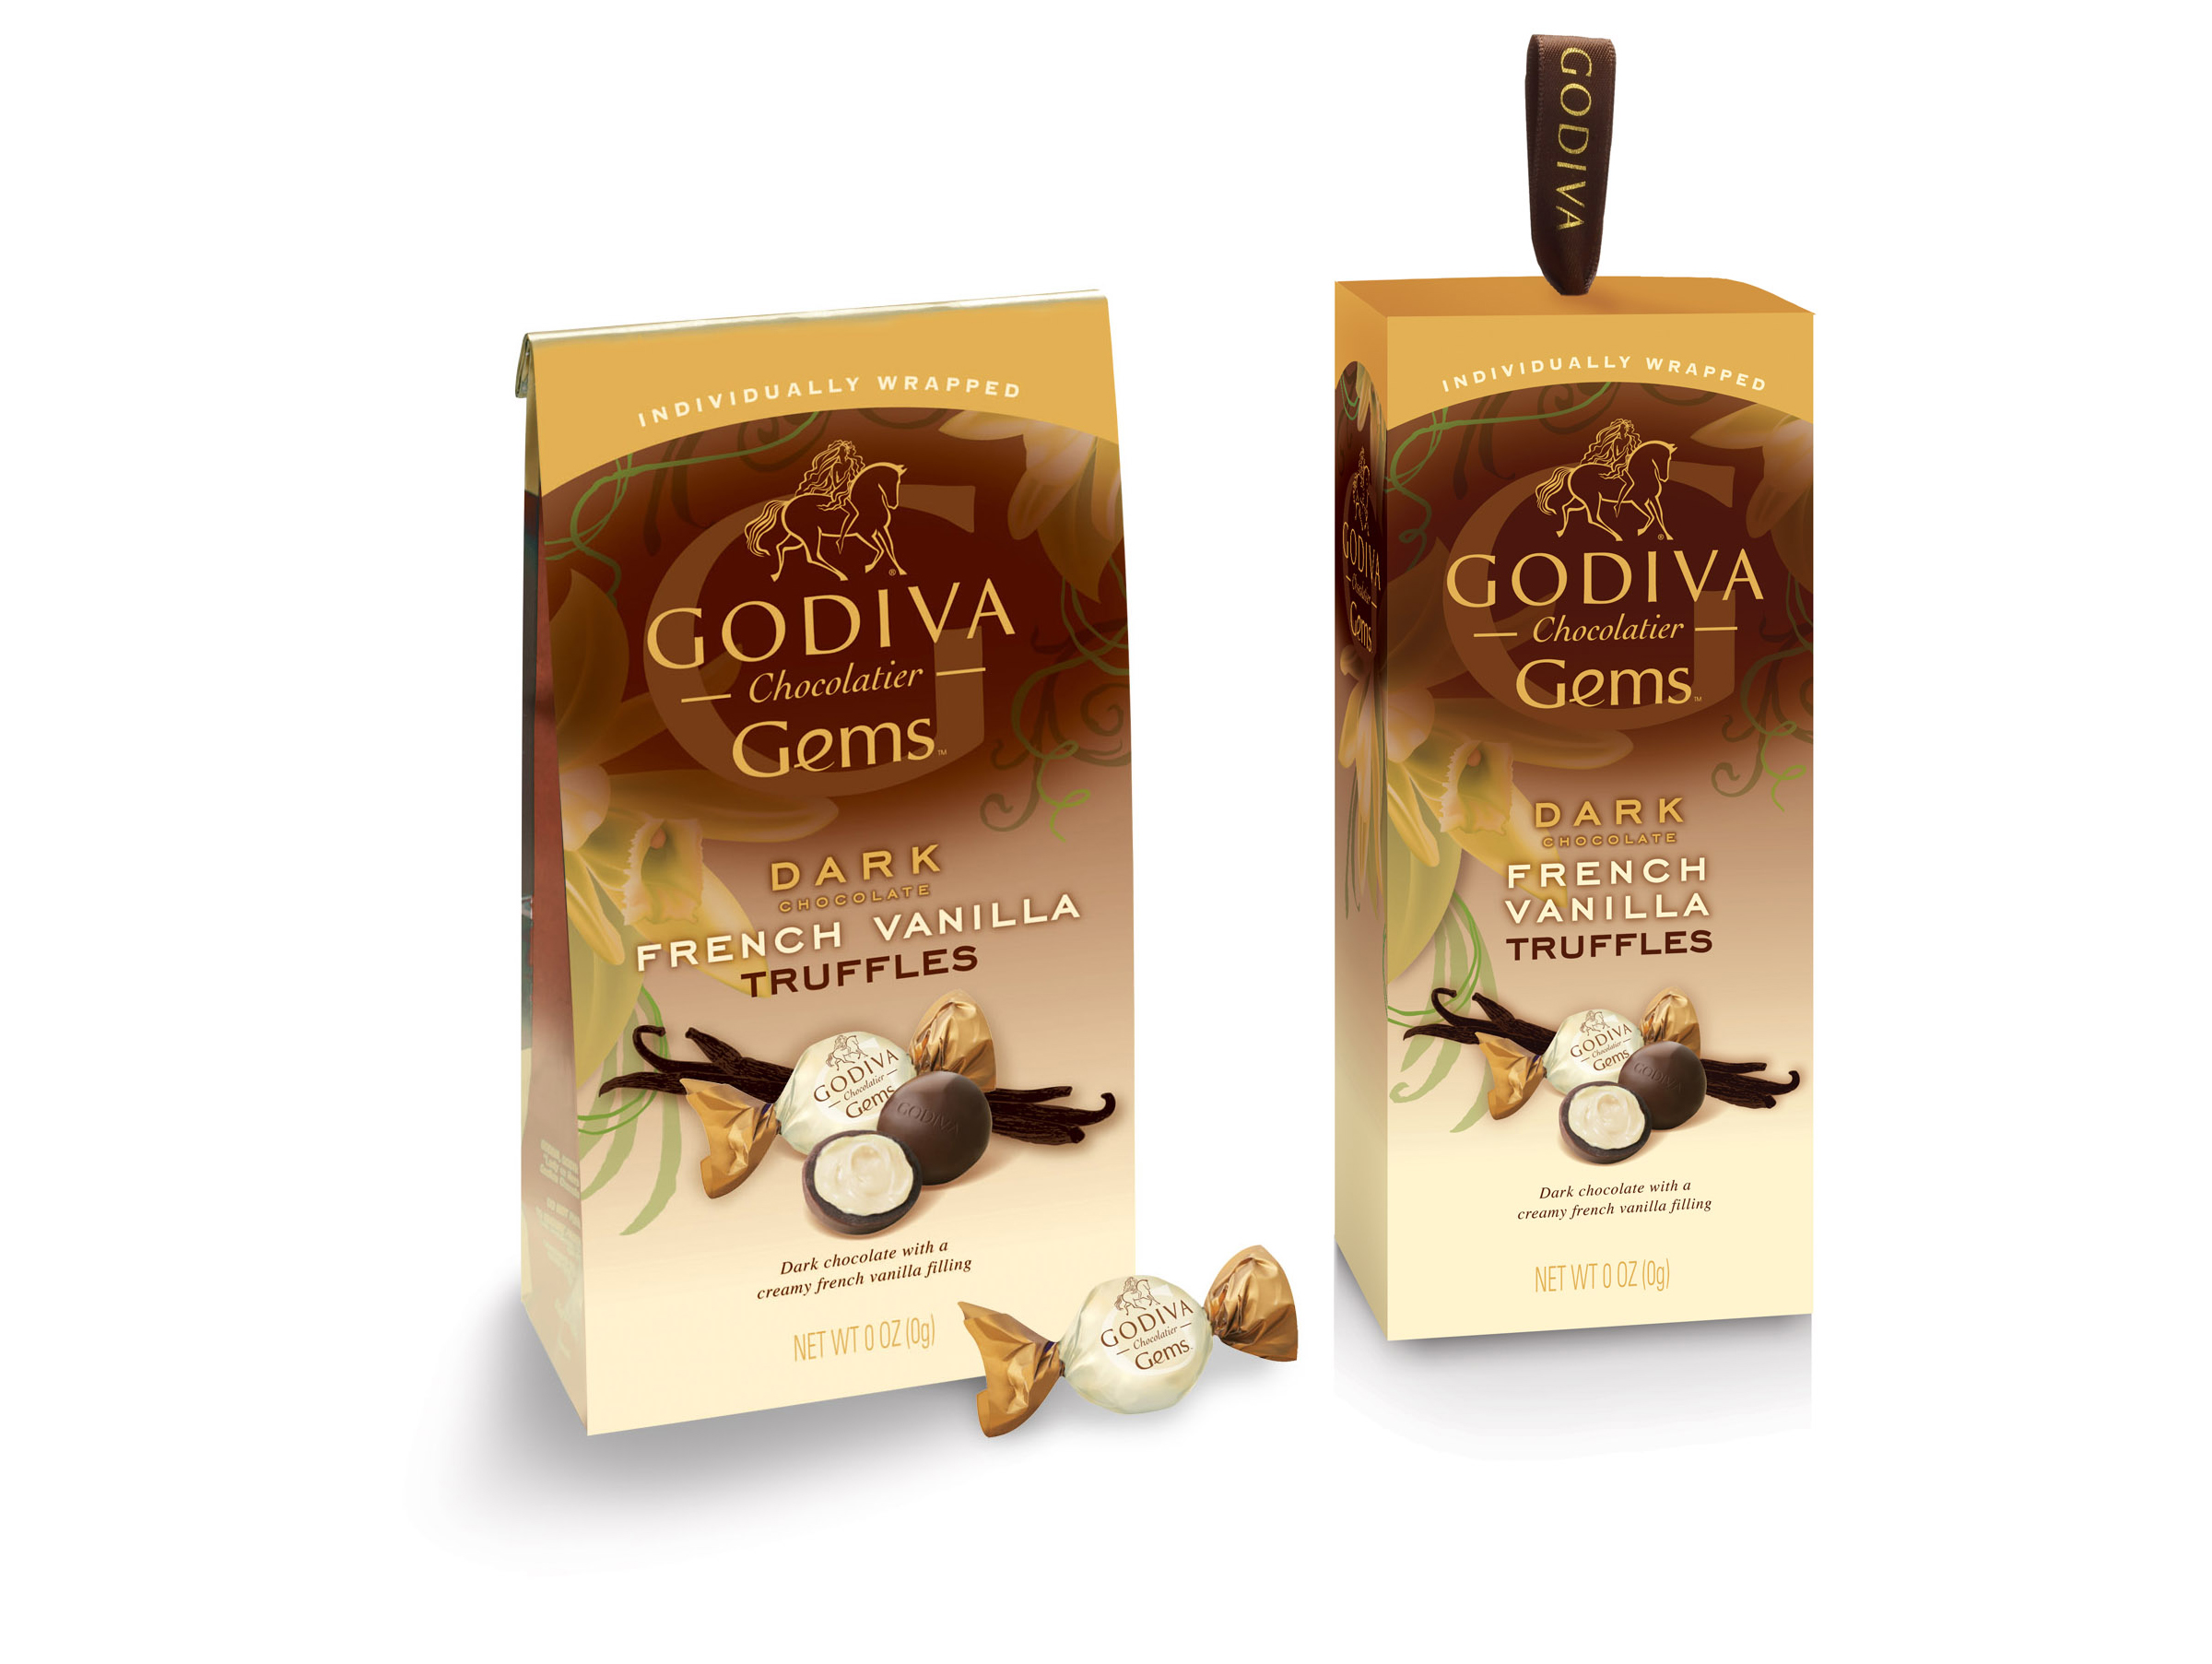 Godiva Gems Package Design - French Vanilla